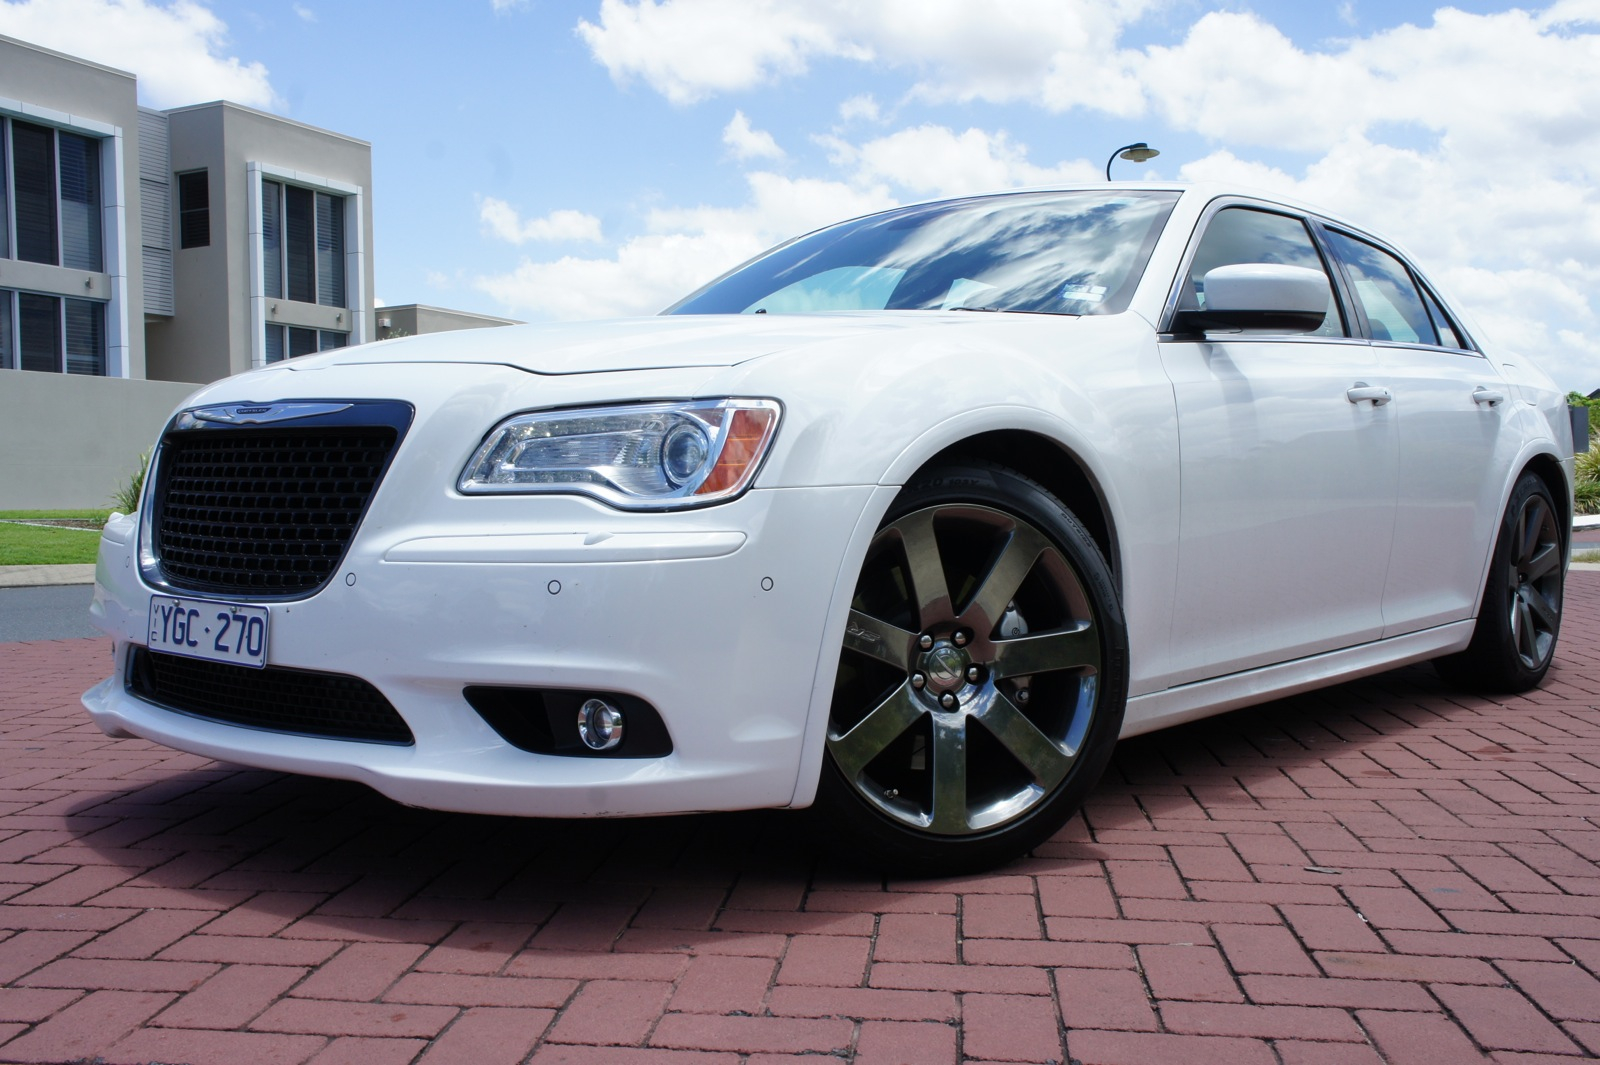 2015 chrysler 300 srt8 price 2017 2018 best cars reviews. Black Bedroom Furniture Sets. Home Design Ideas